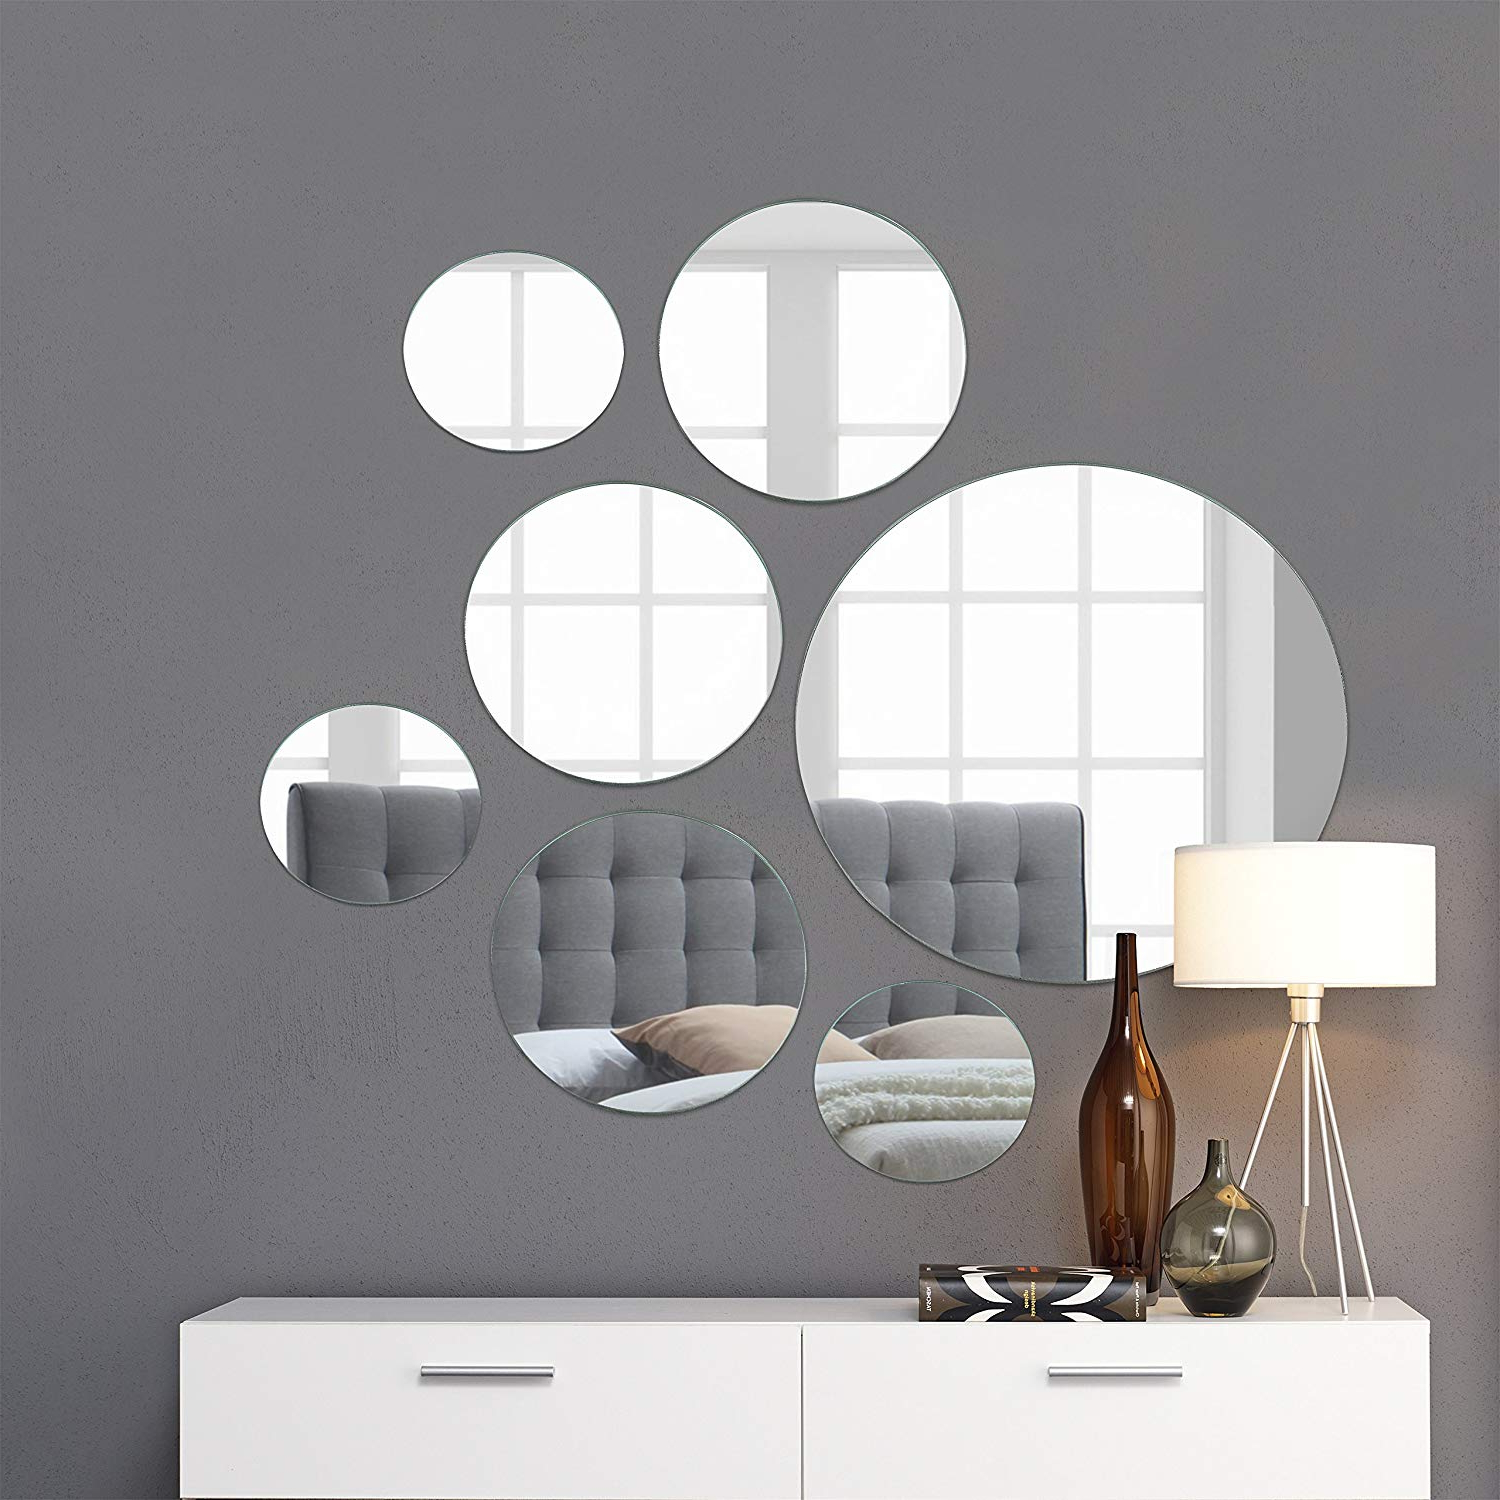 """Famous Mirrored Wall Mirrors With Light In The Dark Medium Round Mirror Wall Mounted Assorted Sizes (1x10"""",  3x7"""", 3x4"""") – Set Of 7 Round Glass Mirrors Wall Decoration For Living Room, (View 5 of 20)"""